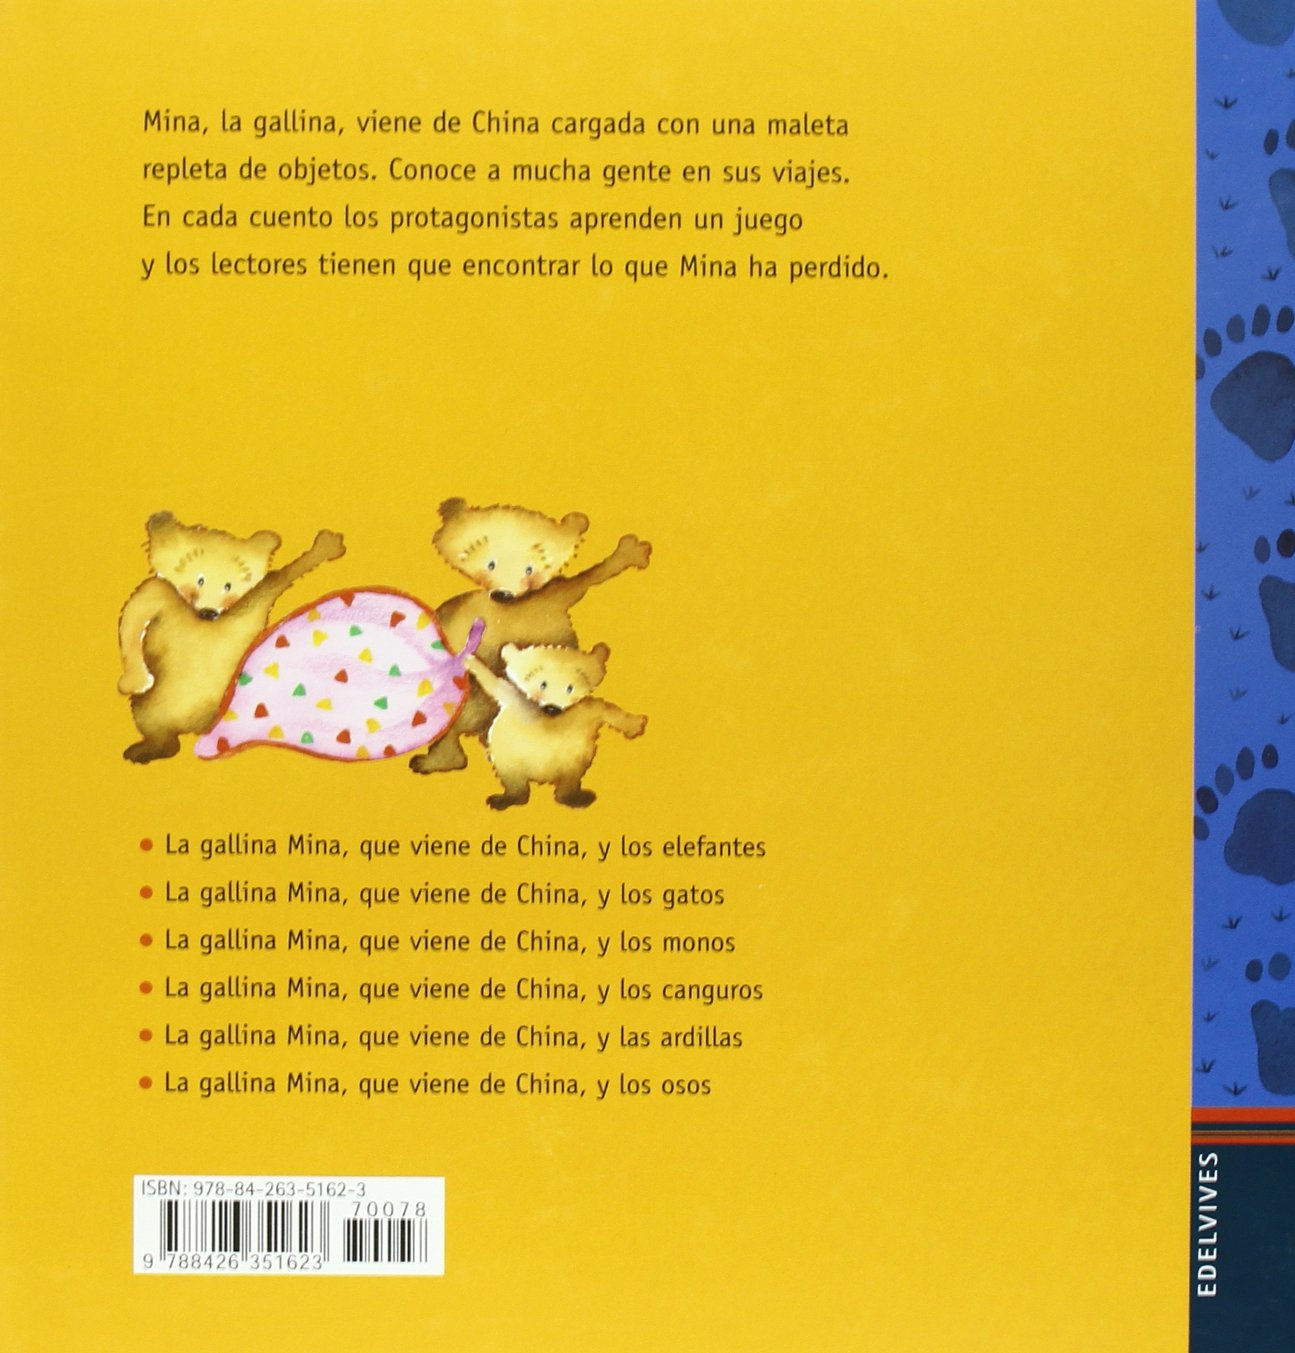 La gallina Mina que viene de China y los osos: Mercè Arànega: 9788426351623: Amazon.com: Books